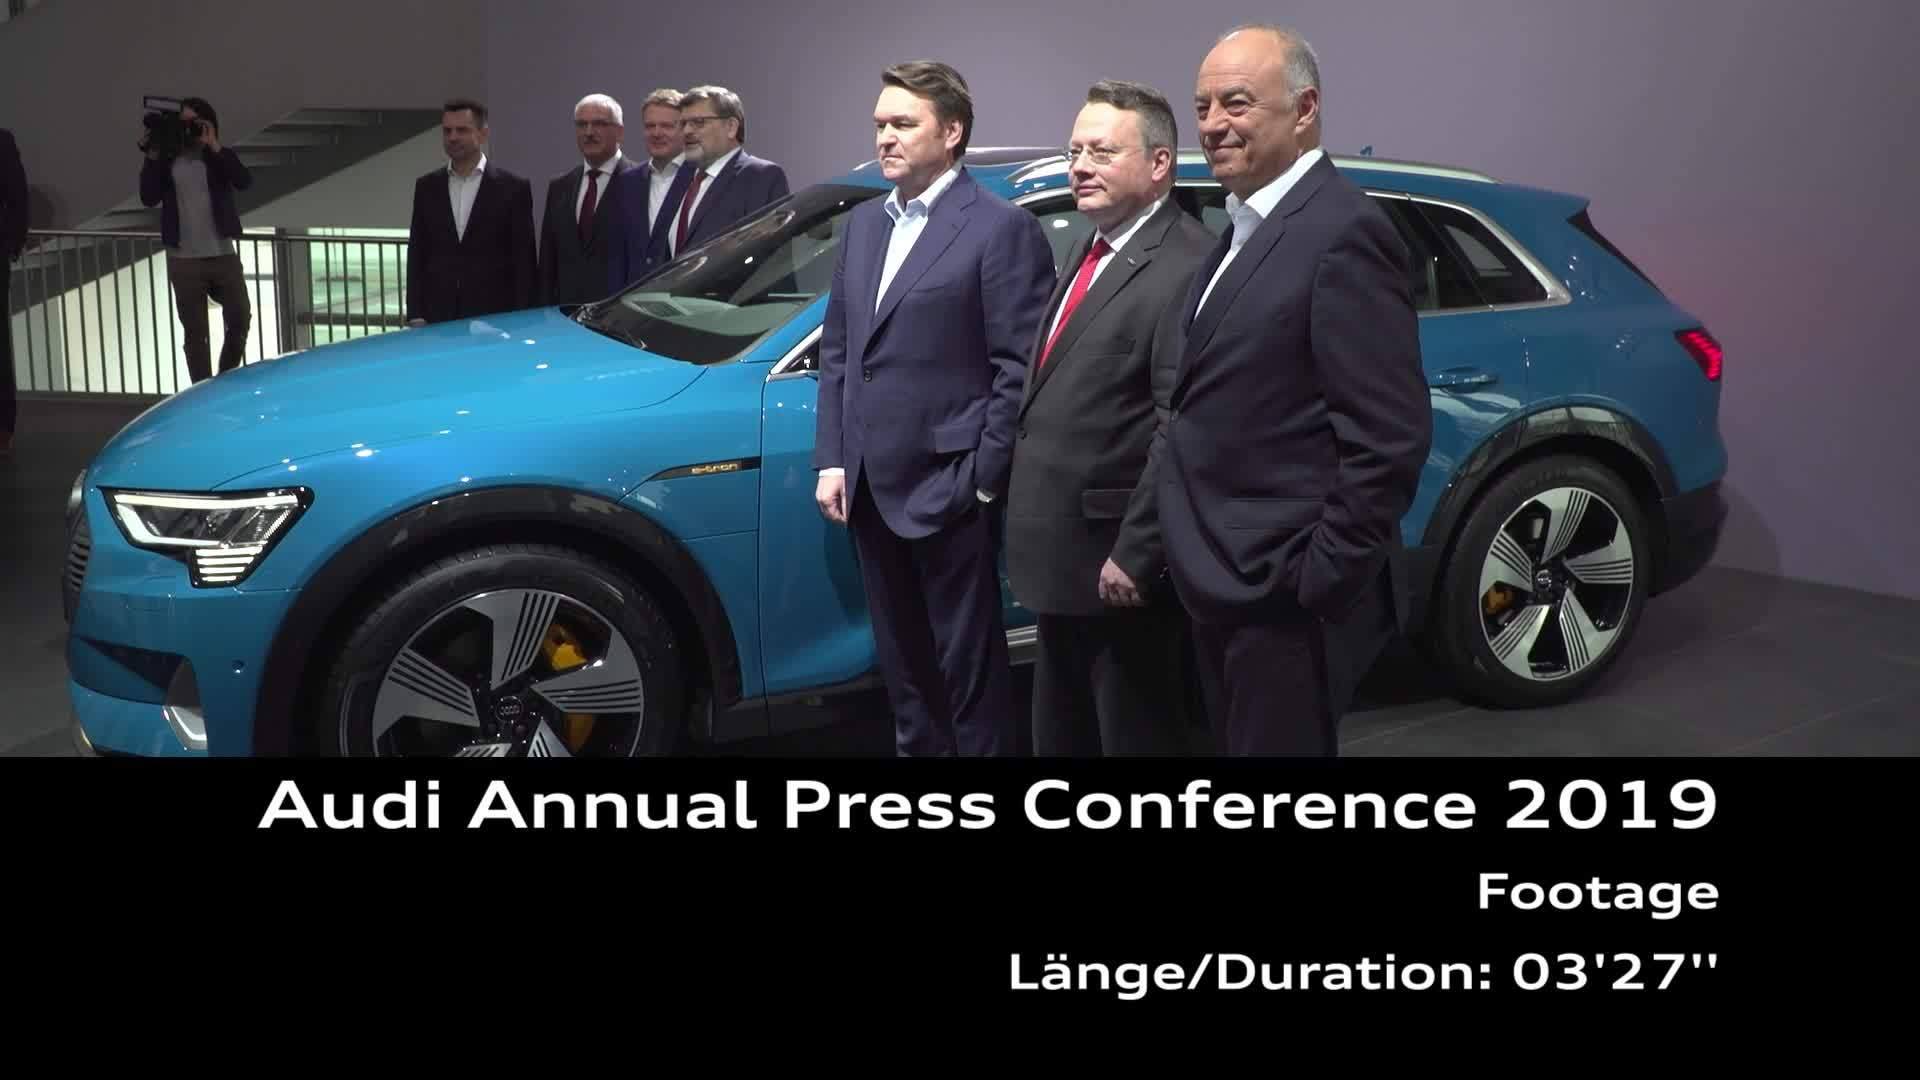 On Location Footage Audi Jahrespressekonferenz 2019